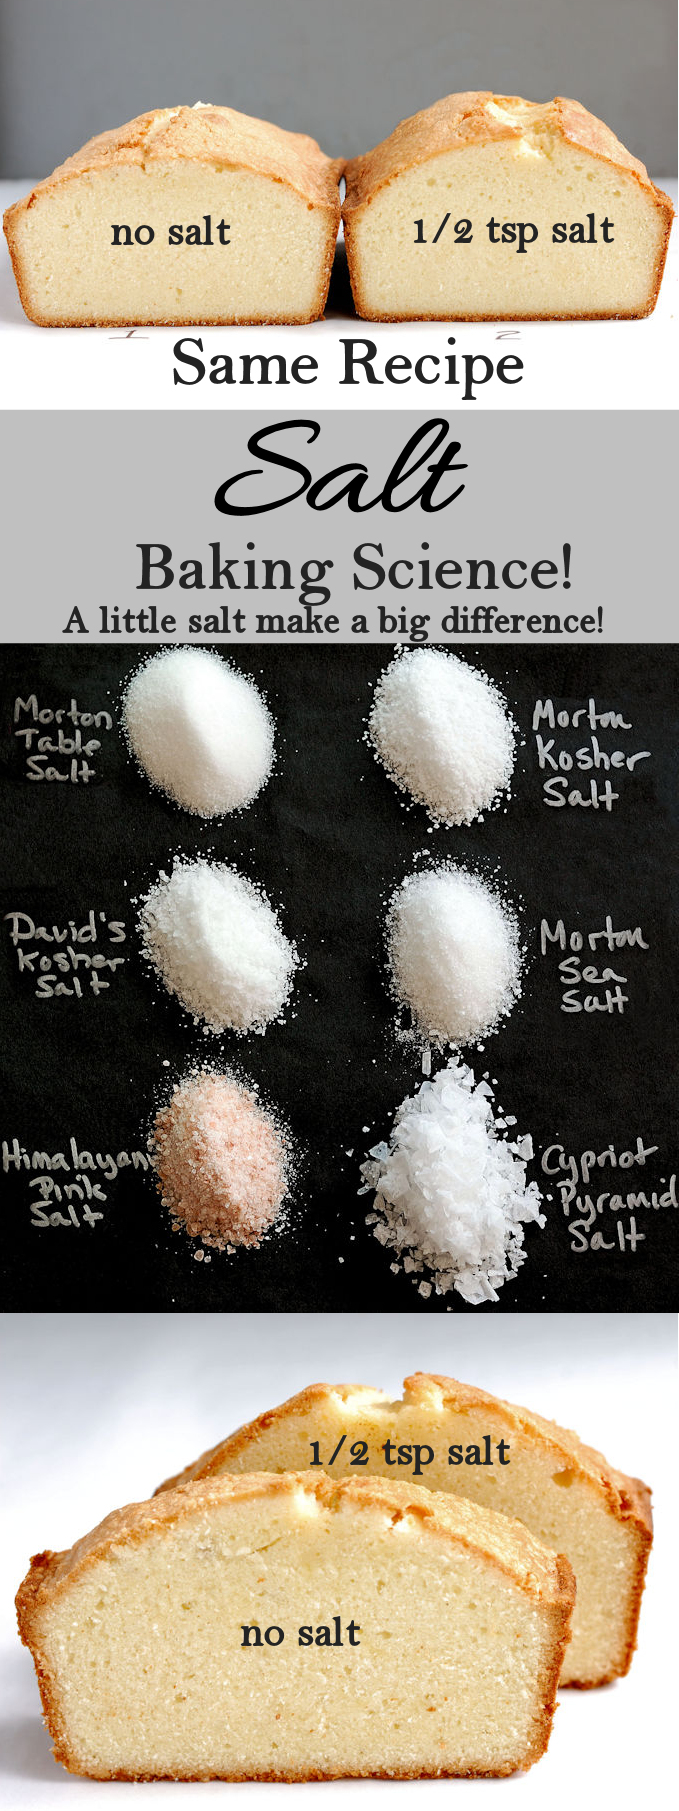 A little salt makes a big difference in baking. It's not just about the flavor, but texture too!